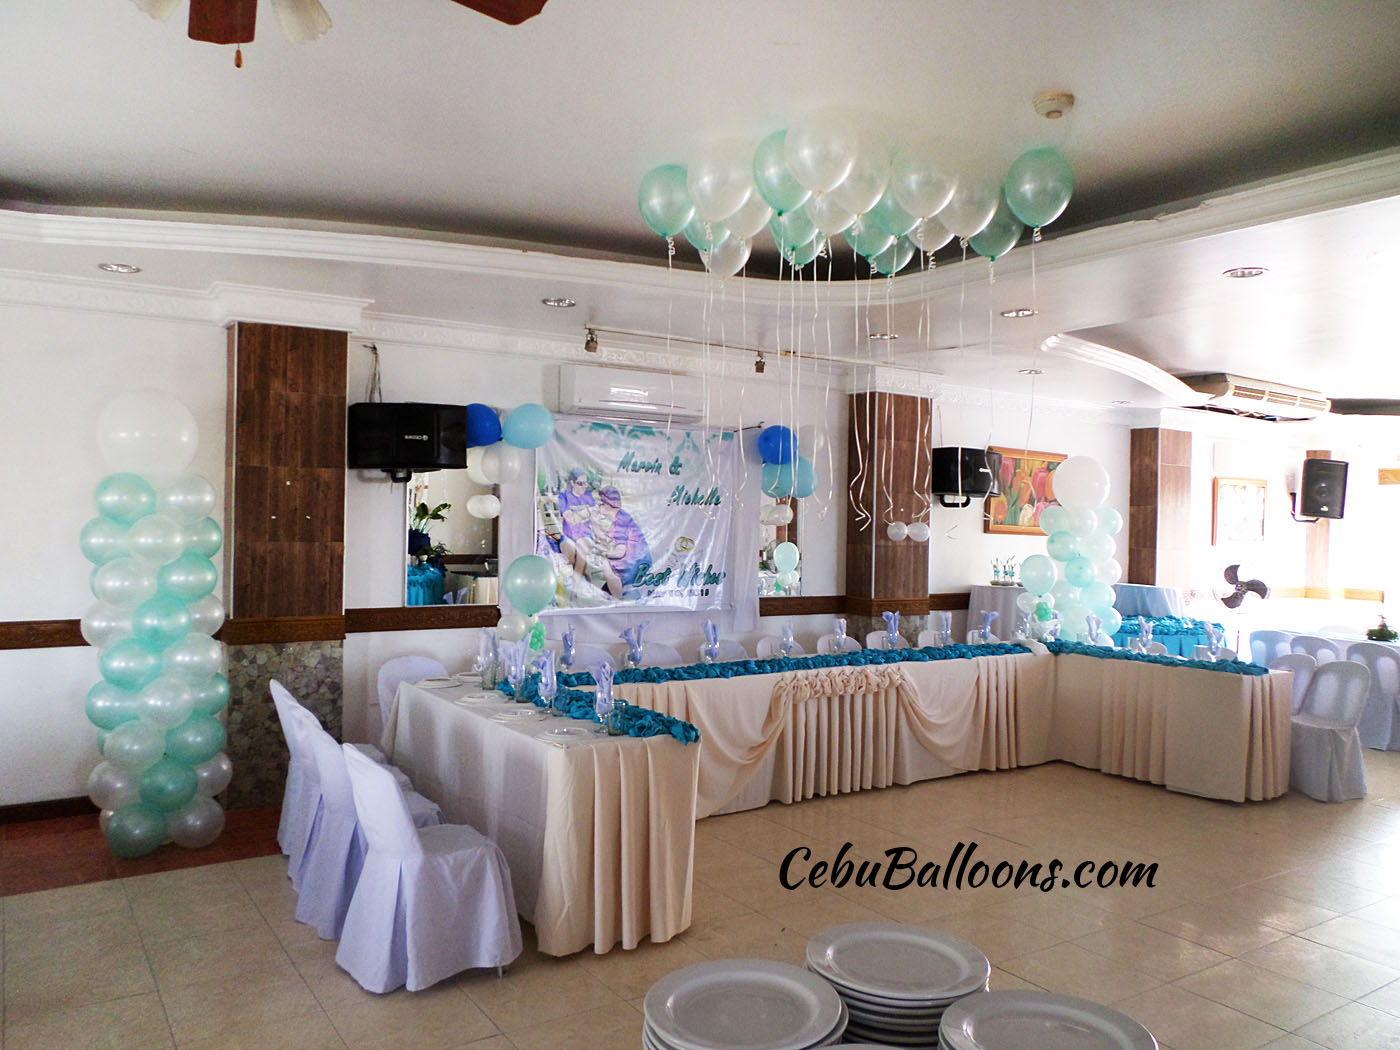 Wedding cebu balloons and party supplies balloons for a wedding celebration at maria lina catering building junglespirit Choice Image